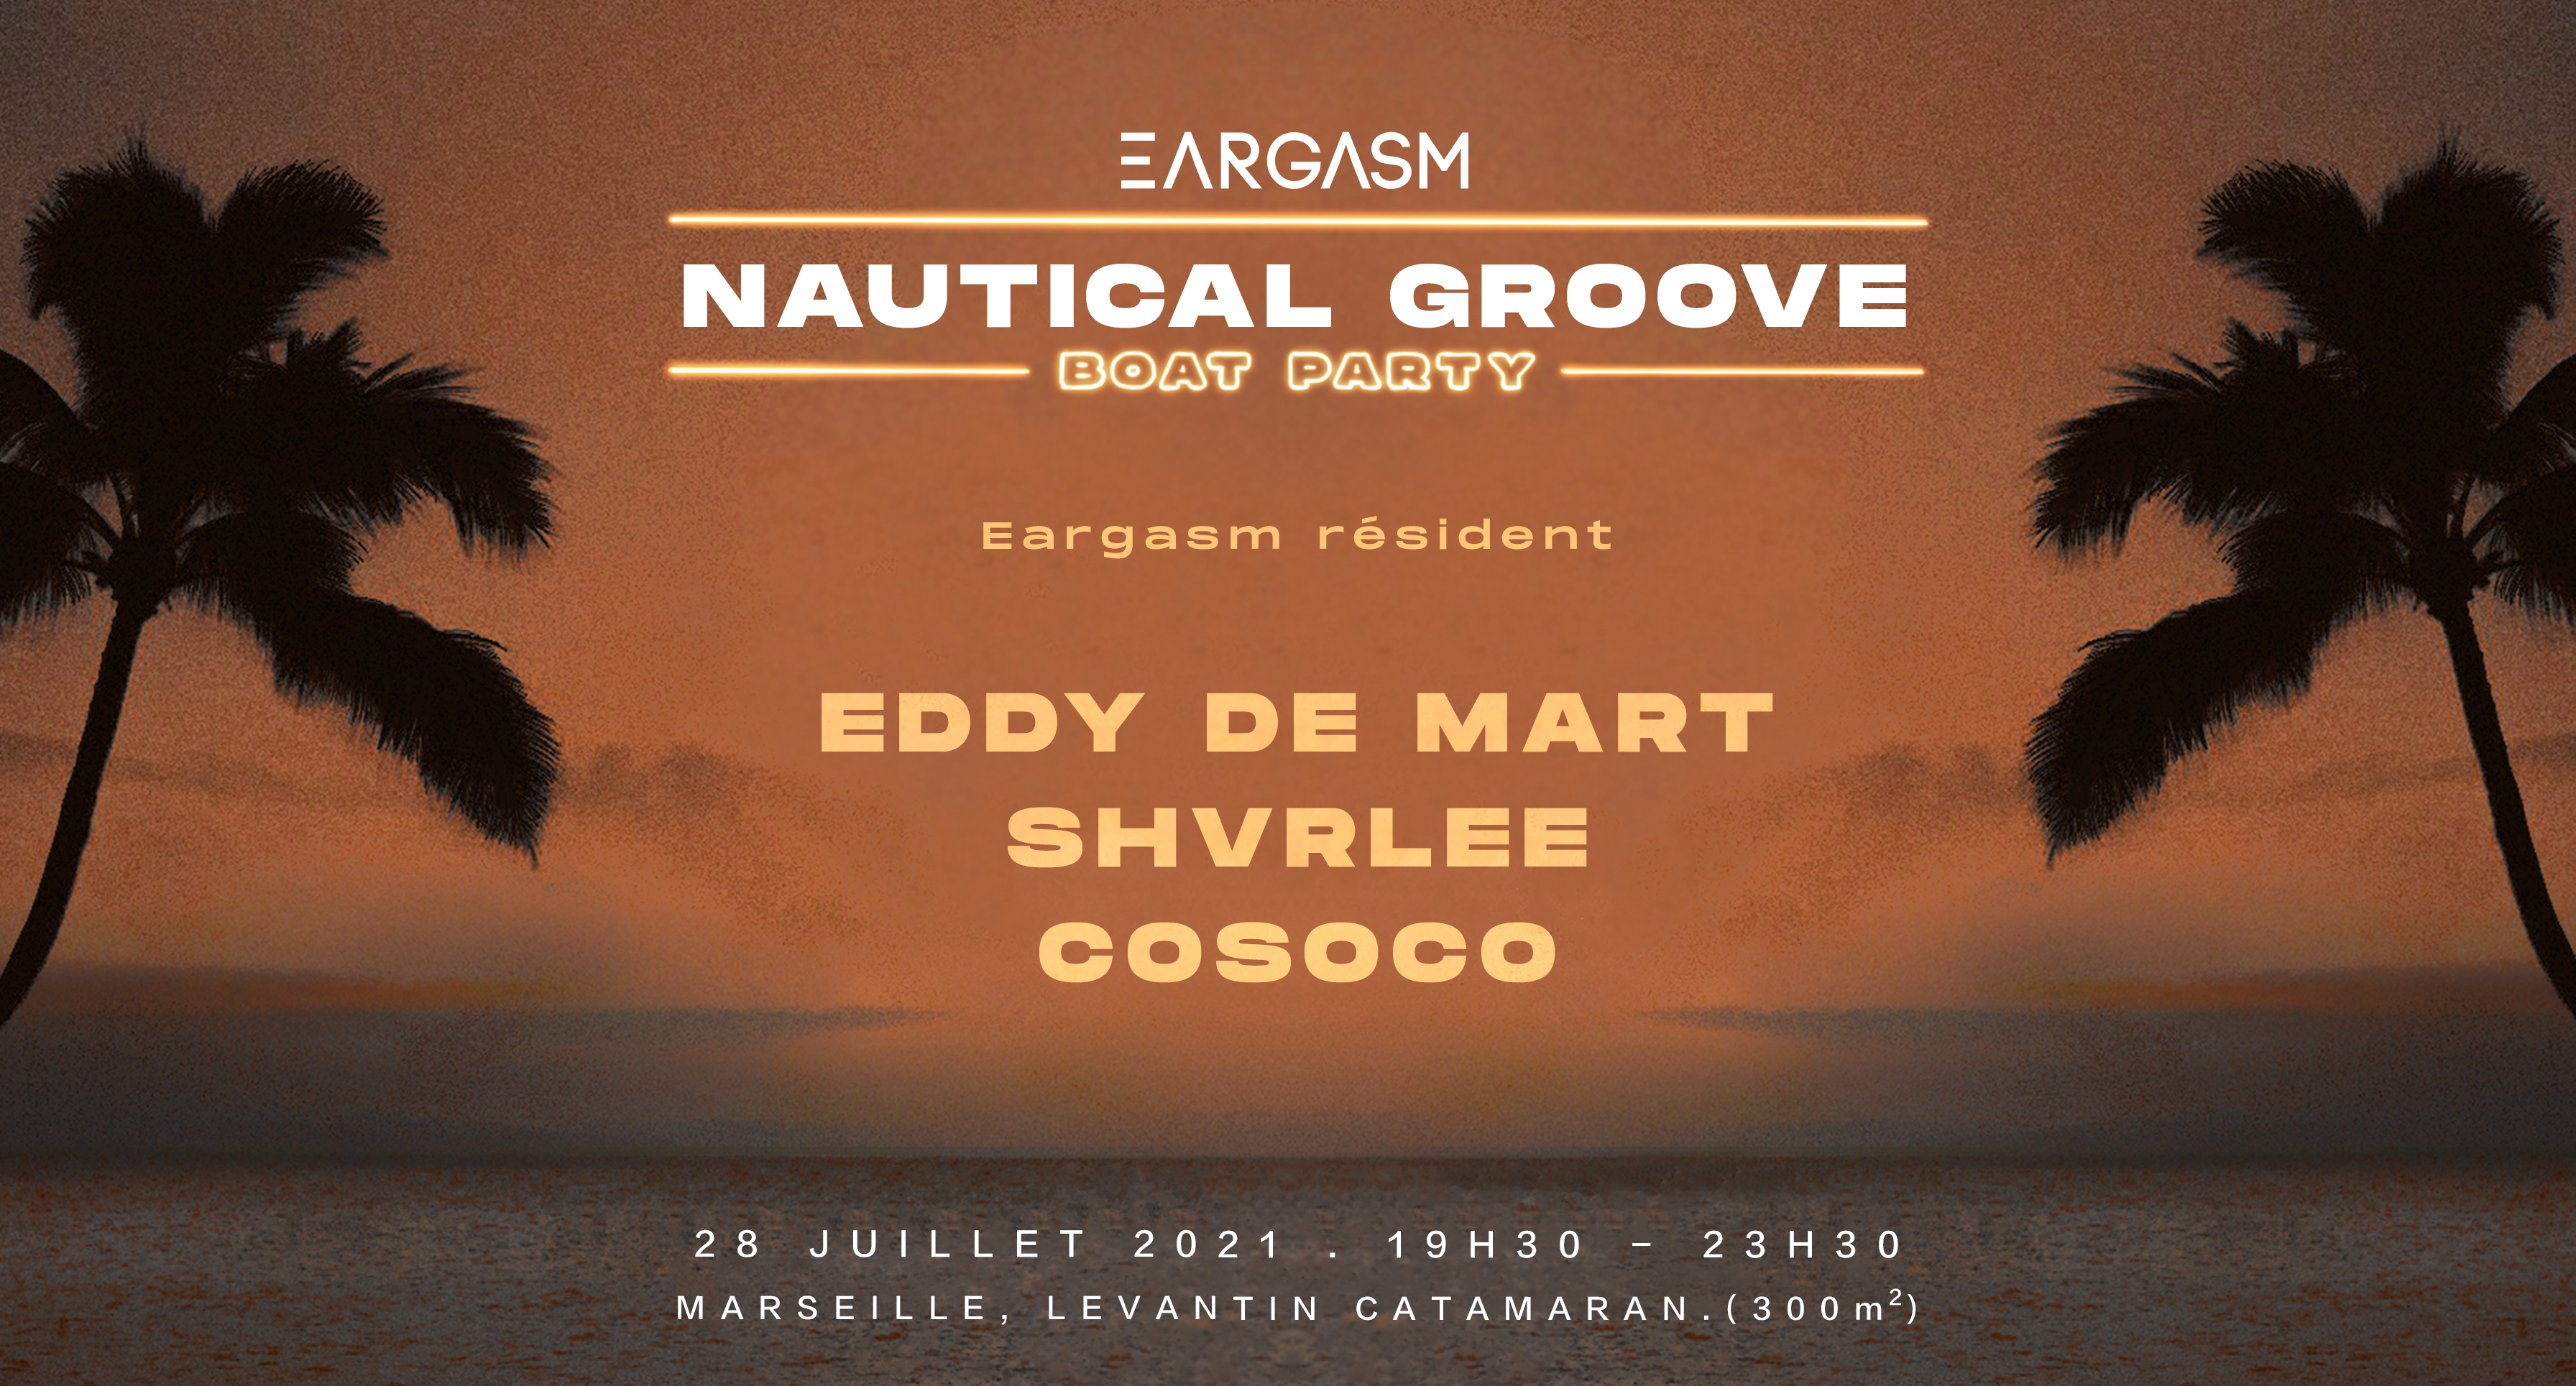 NAUTICAL GROOVE #9 [BOAT PARTY] by Eargasm